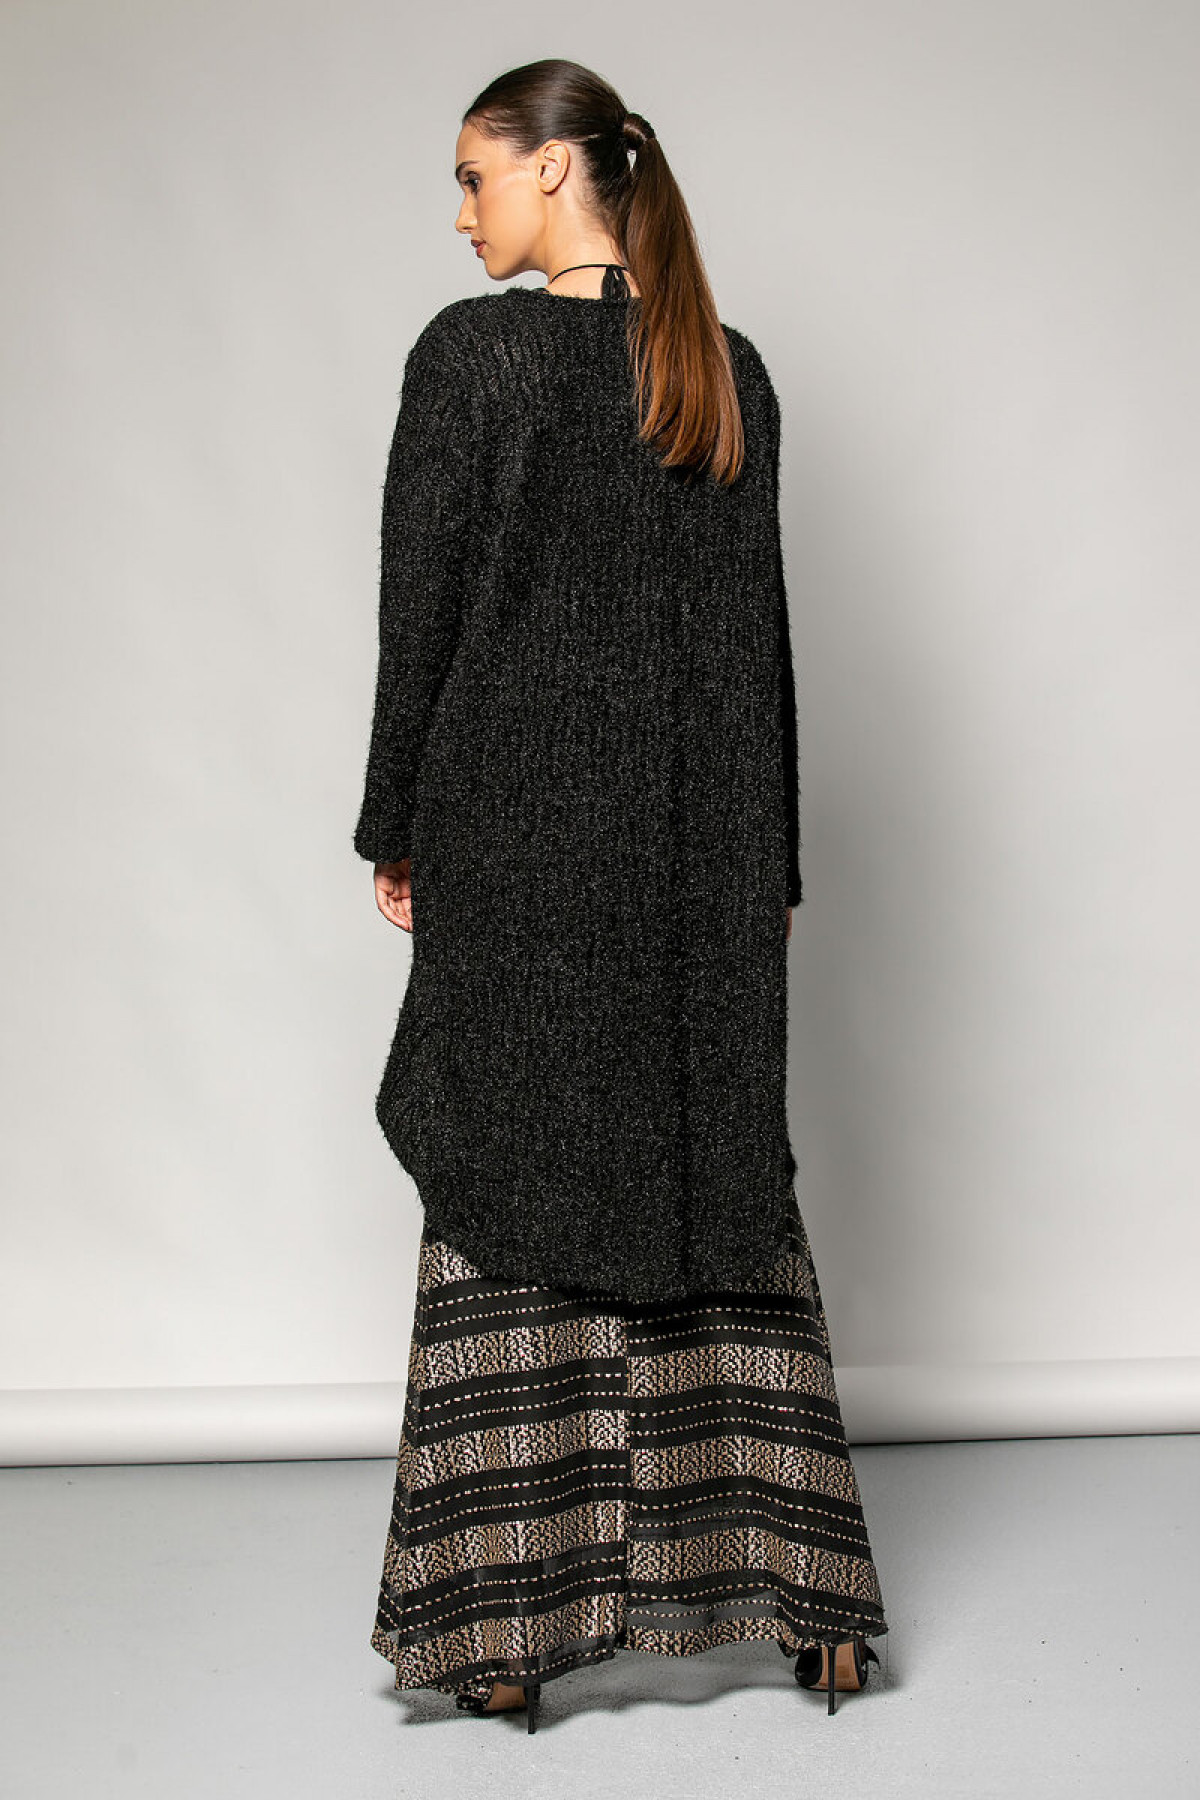 BLACK LONG KNIT CARDIGAN WITH SEQUINS